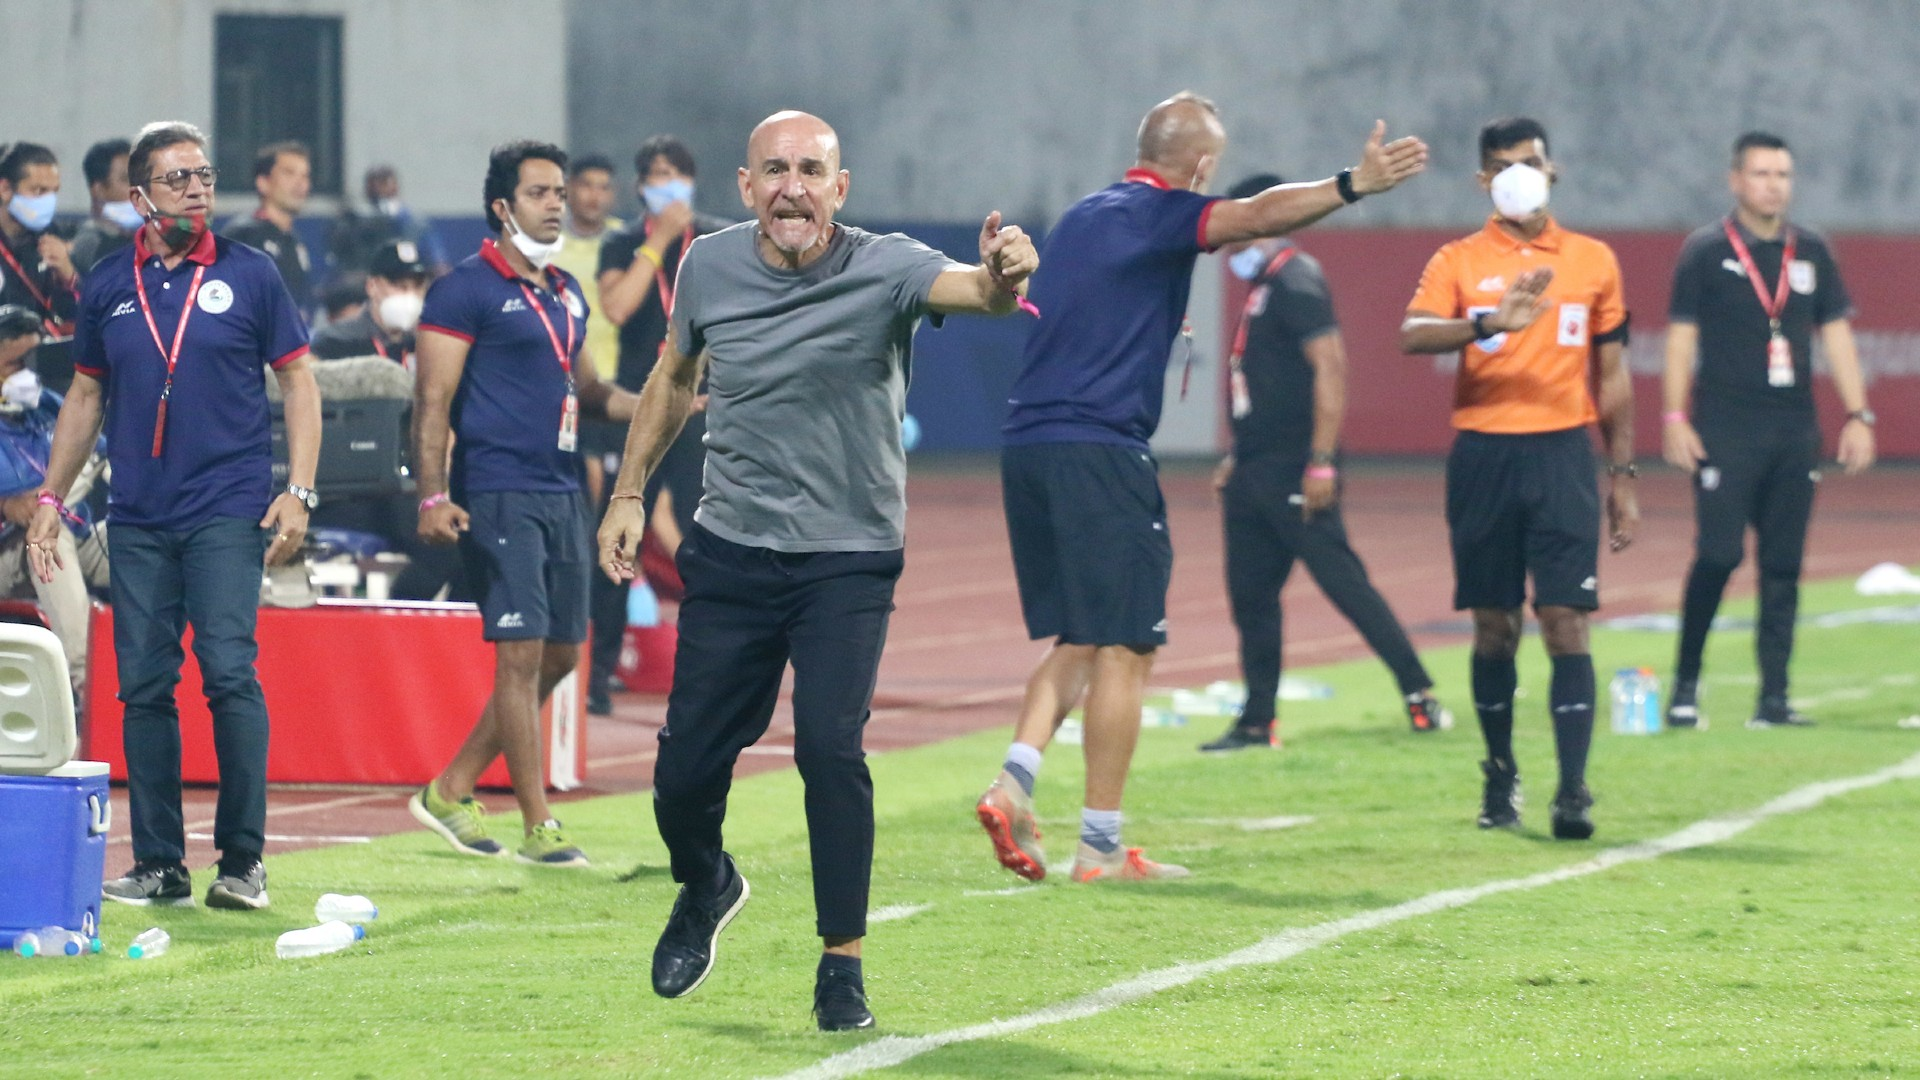 'ATK Mohun Bagan have players with ISL final experience' - Antonio Habas plays down earlier defeats to Mumbai City